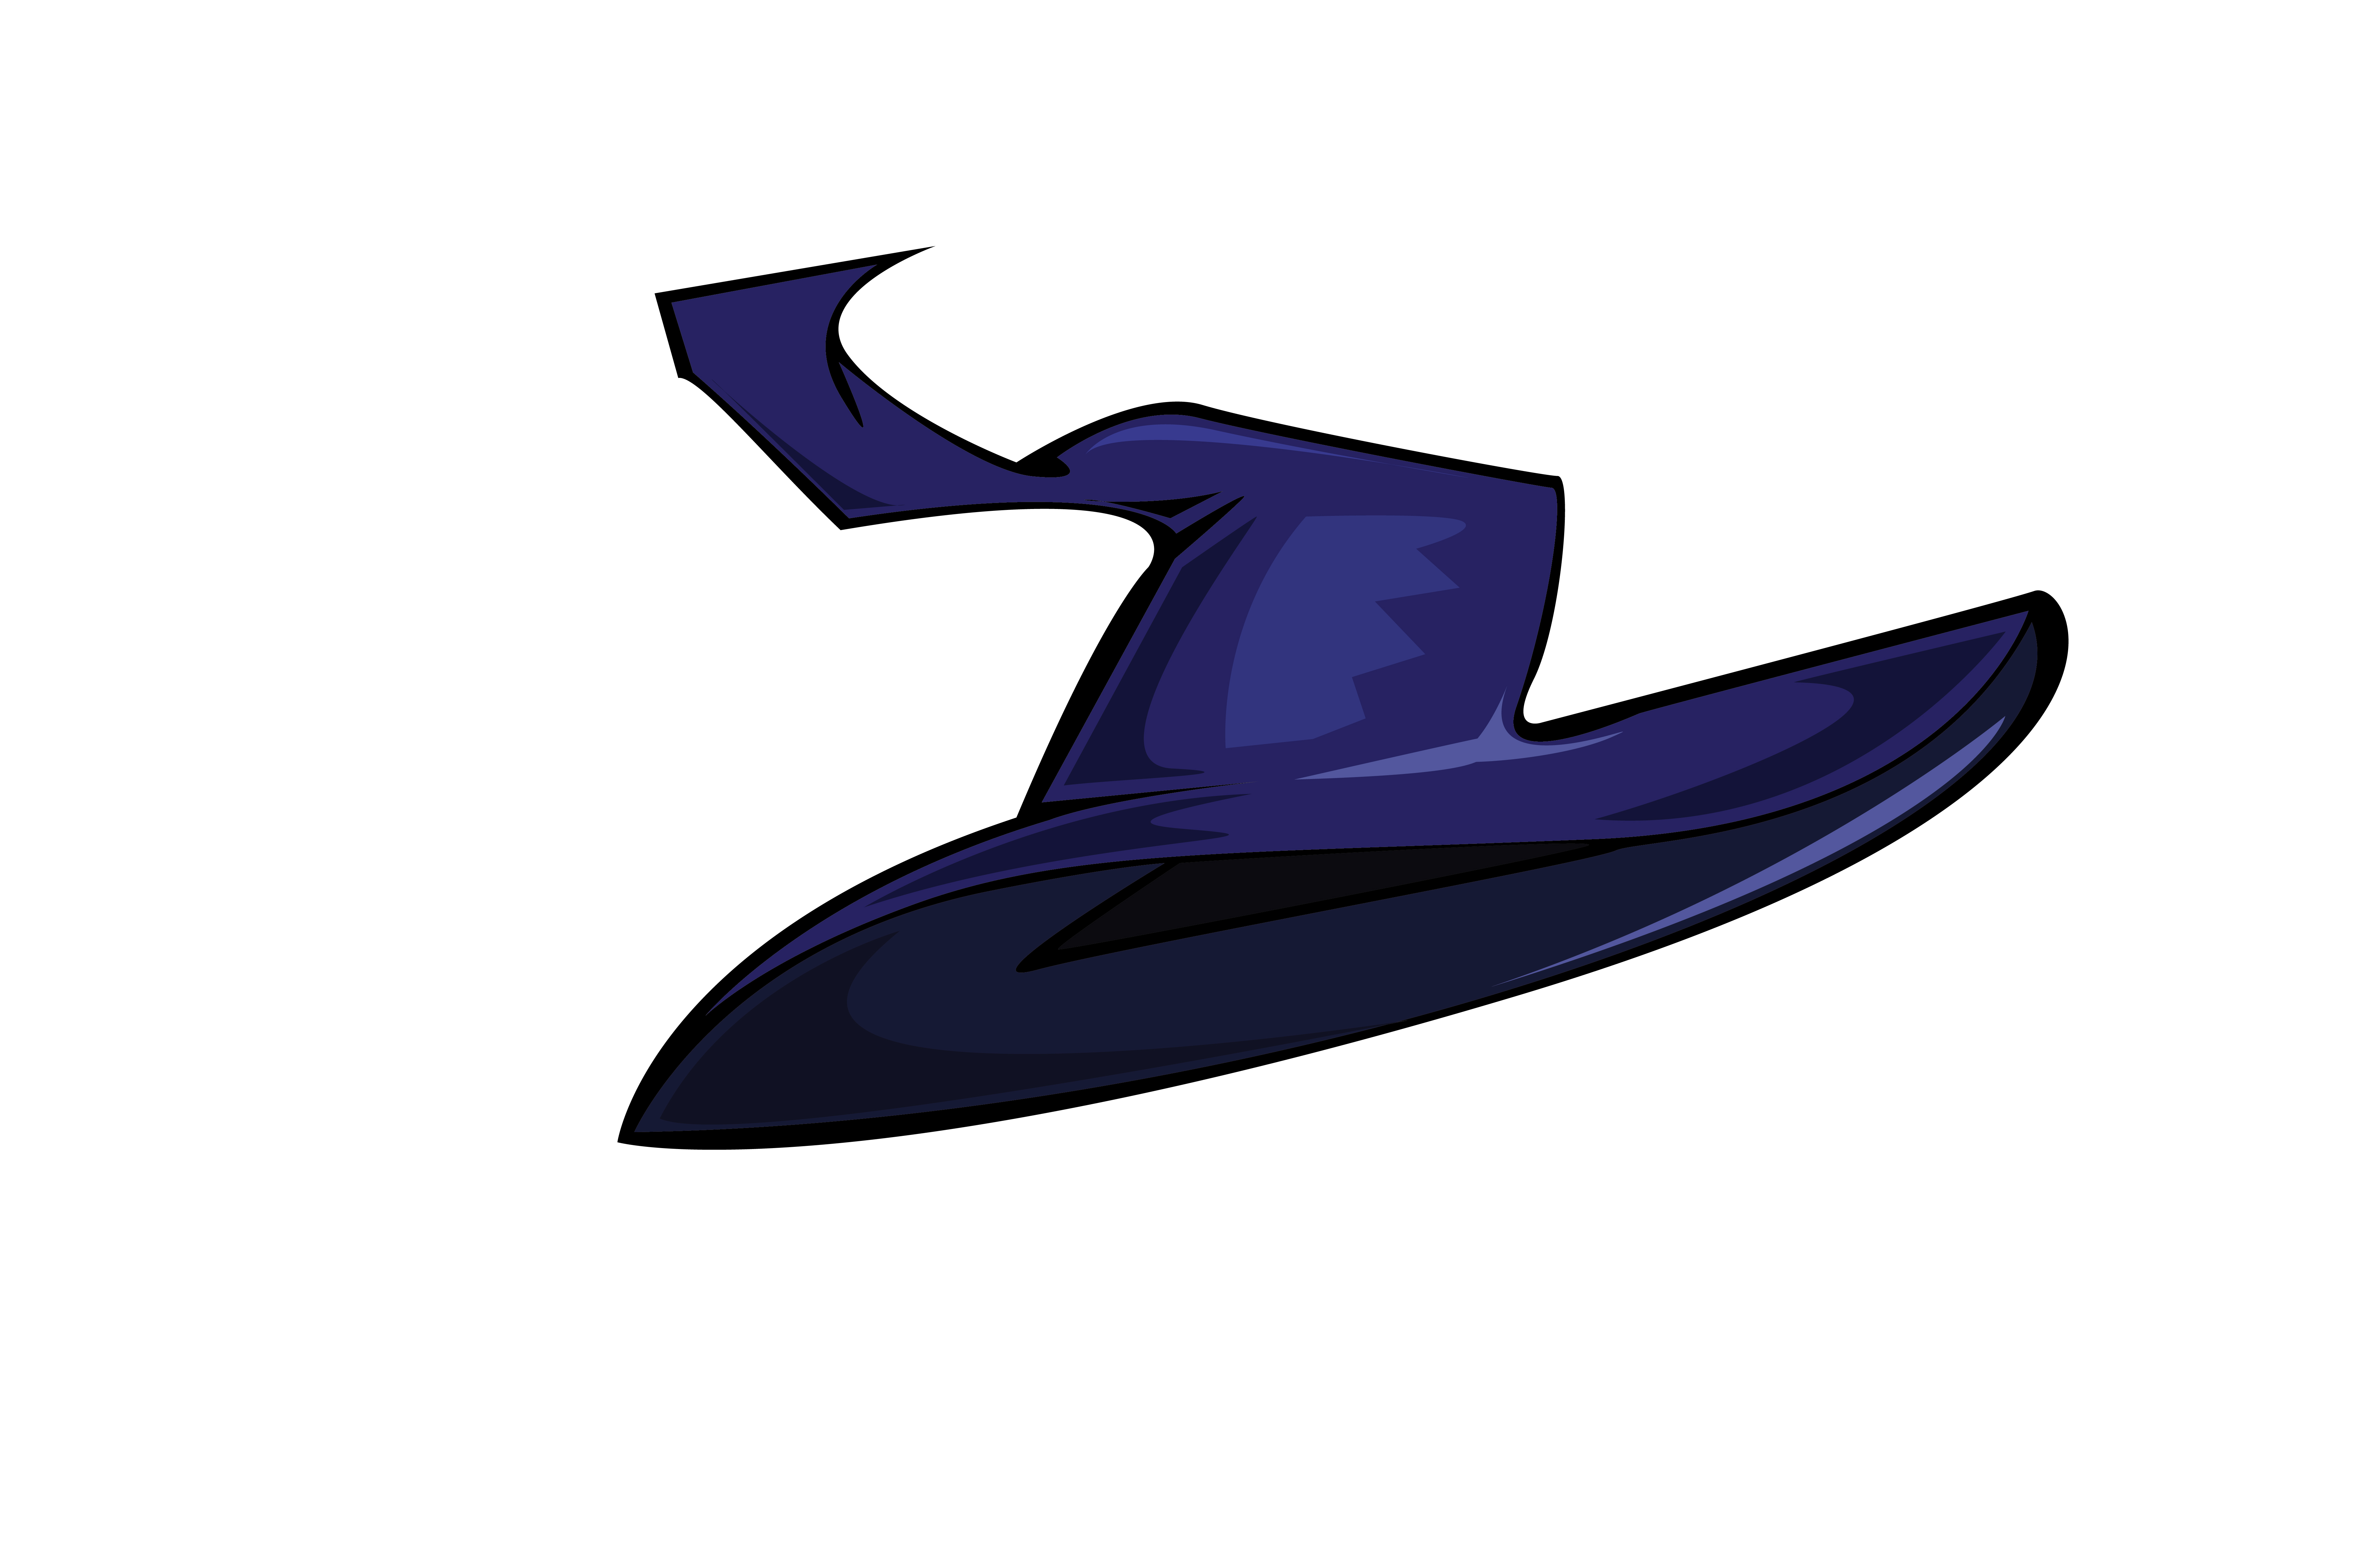 Download Free Halloween Vector Wizard Hat Blue Graphic By Rfg Creative Fabrica for Cricut Explore, Silhouette and other cutting machines.